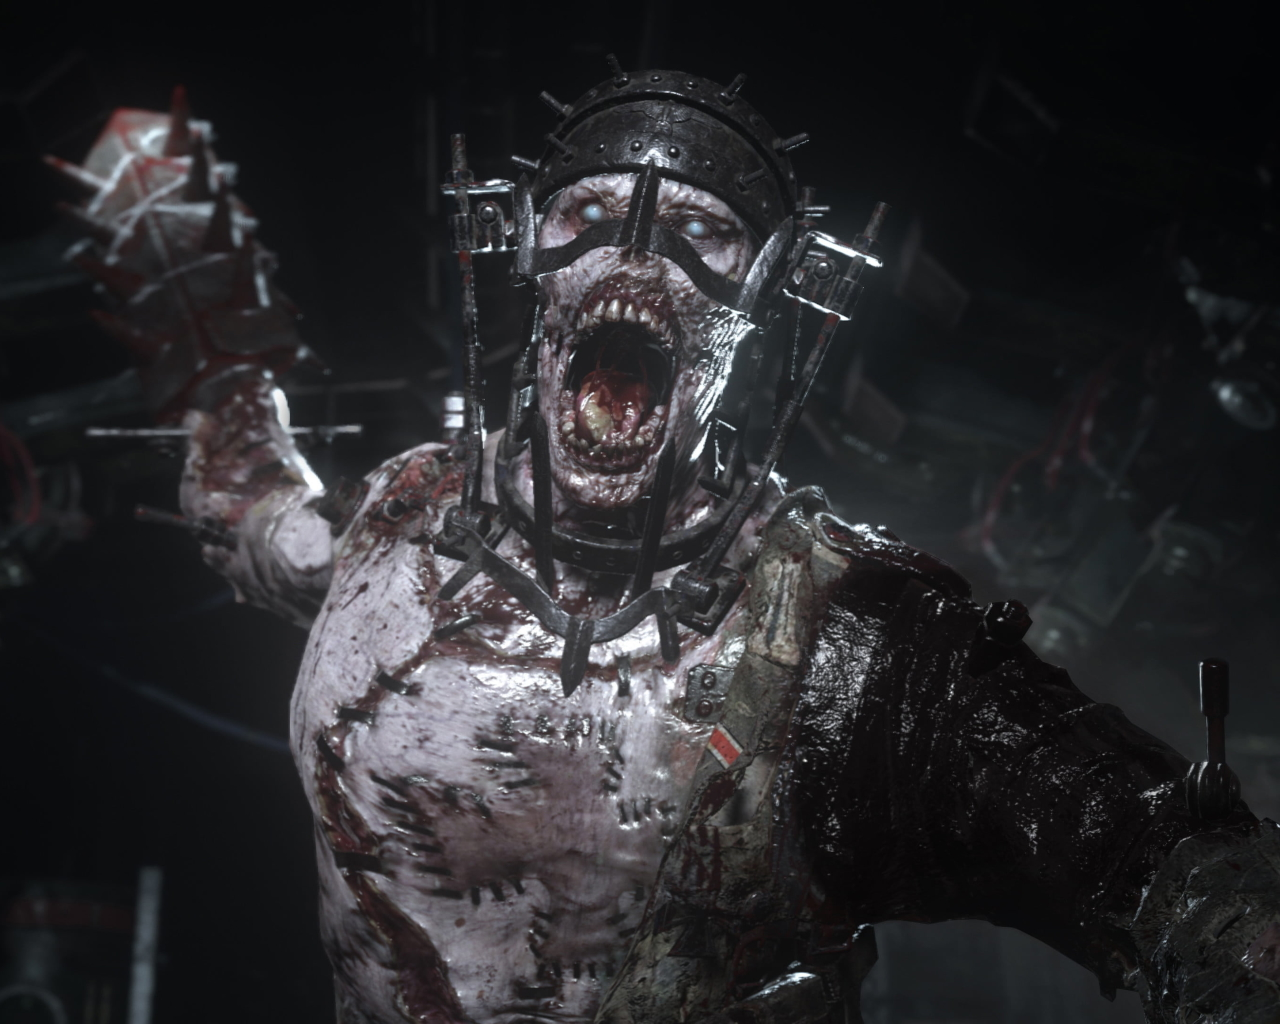 Call of duty wwii nazi zombies hd 4k wallpaper - Cod ww2 4k pc ...